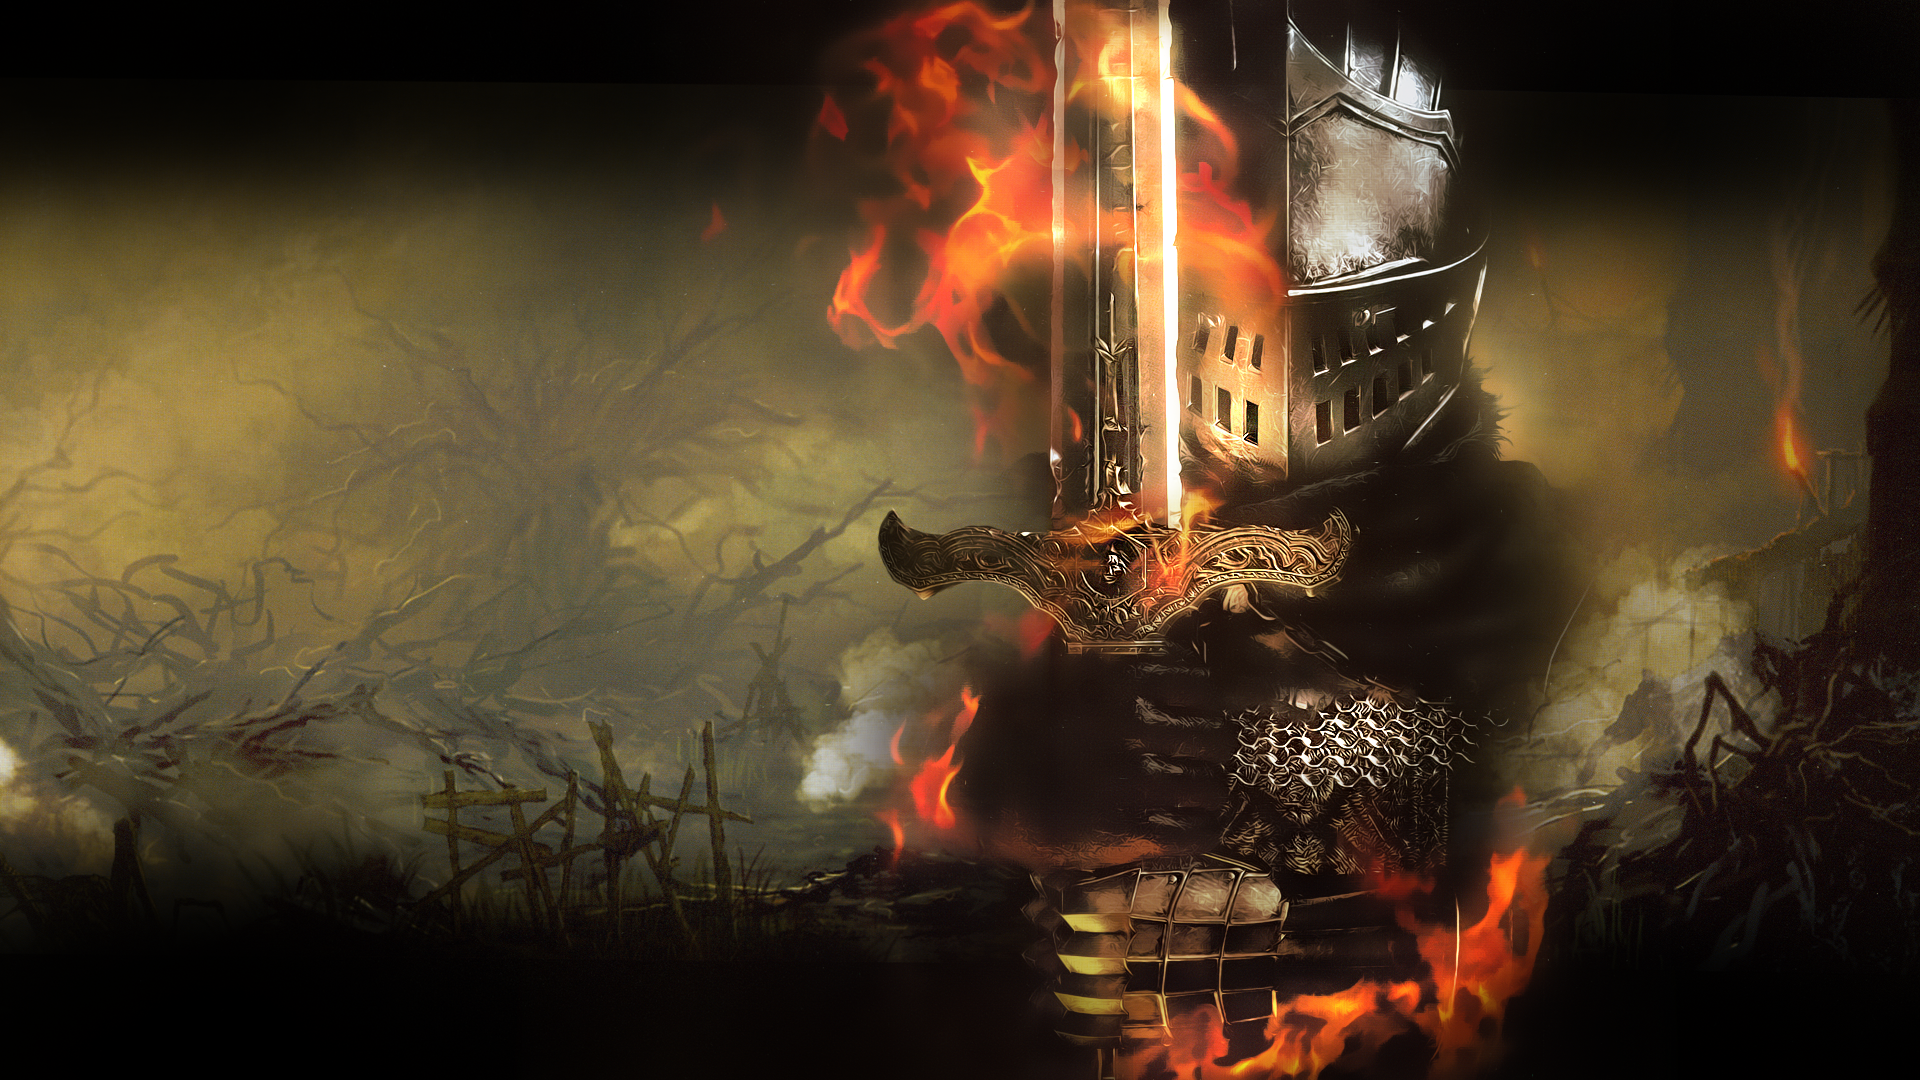 Dark Souls Wallpaper Dark Souls Game Wallpapers Dark Souls Wallpaper Android Wallpaper Dark